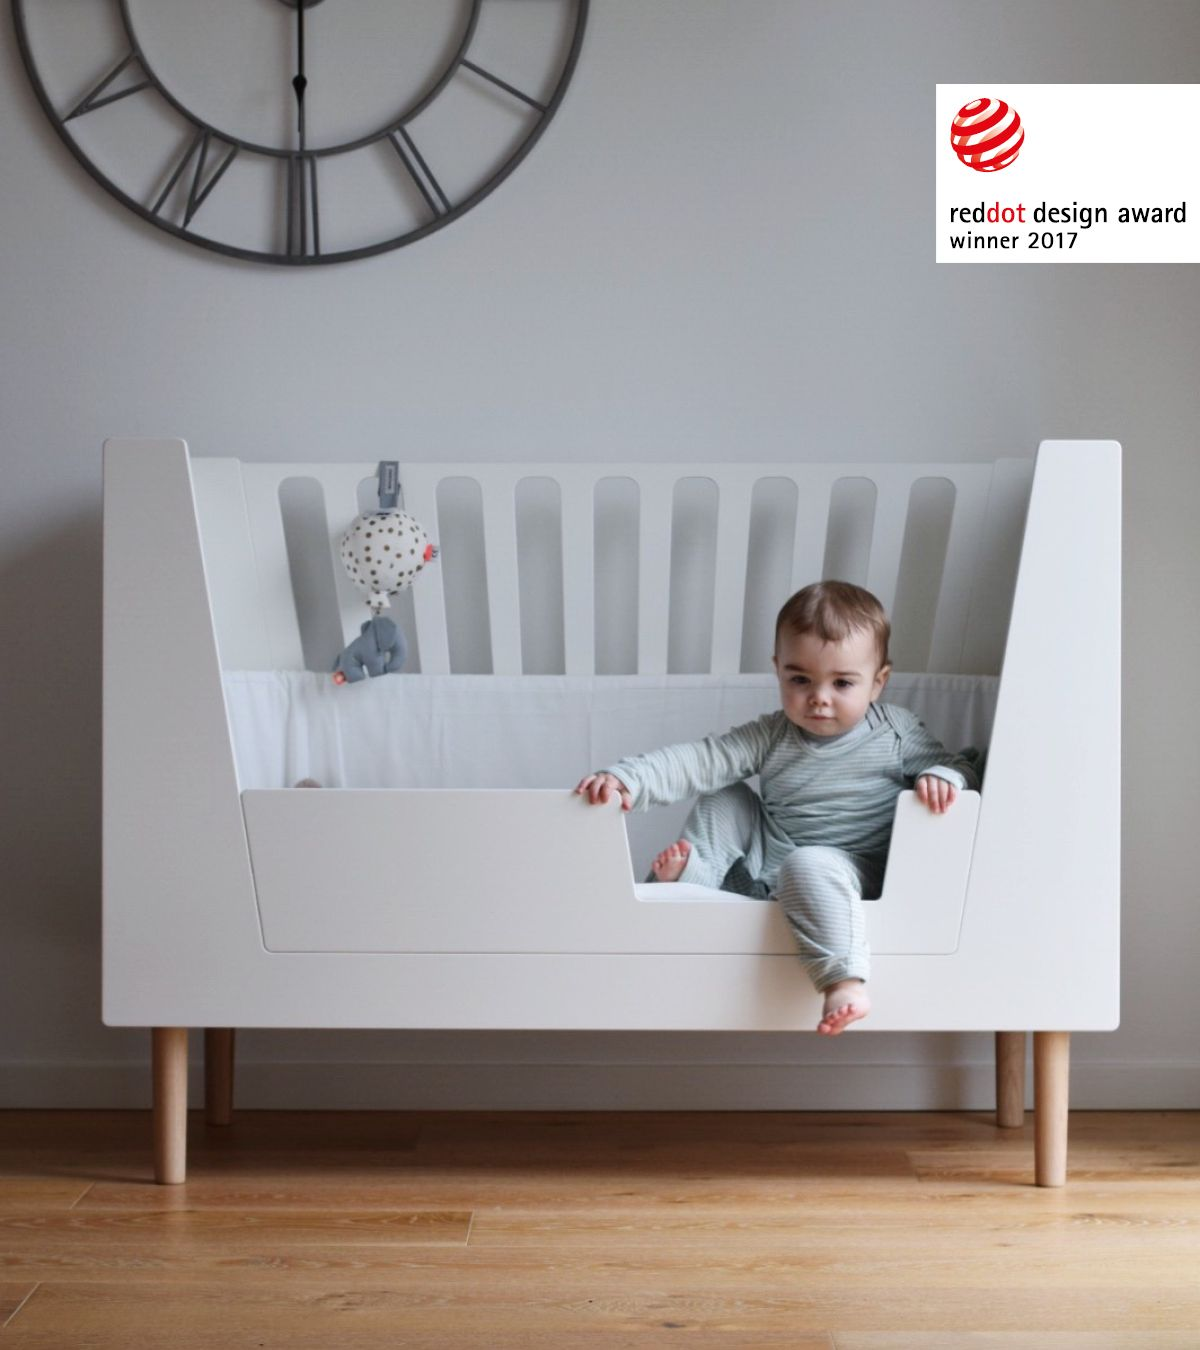 the red dot award winning baby cot from done by deer converts to accommodate your child 39 s needs